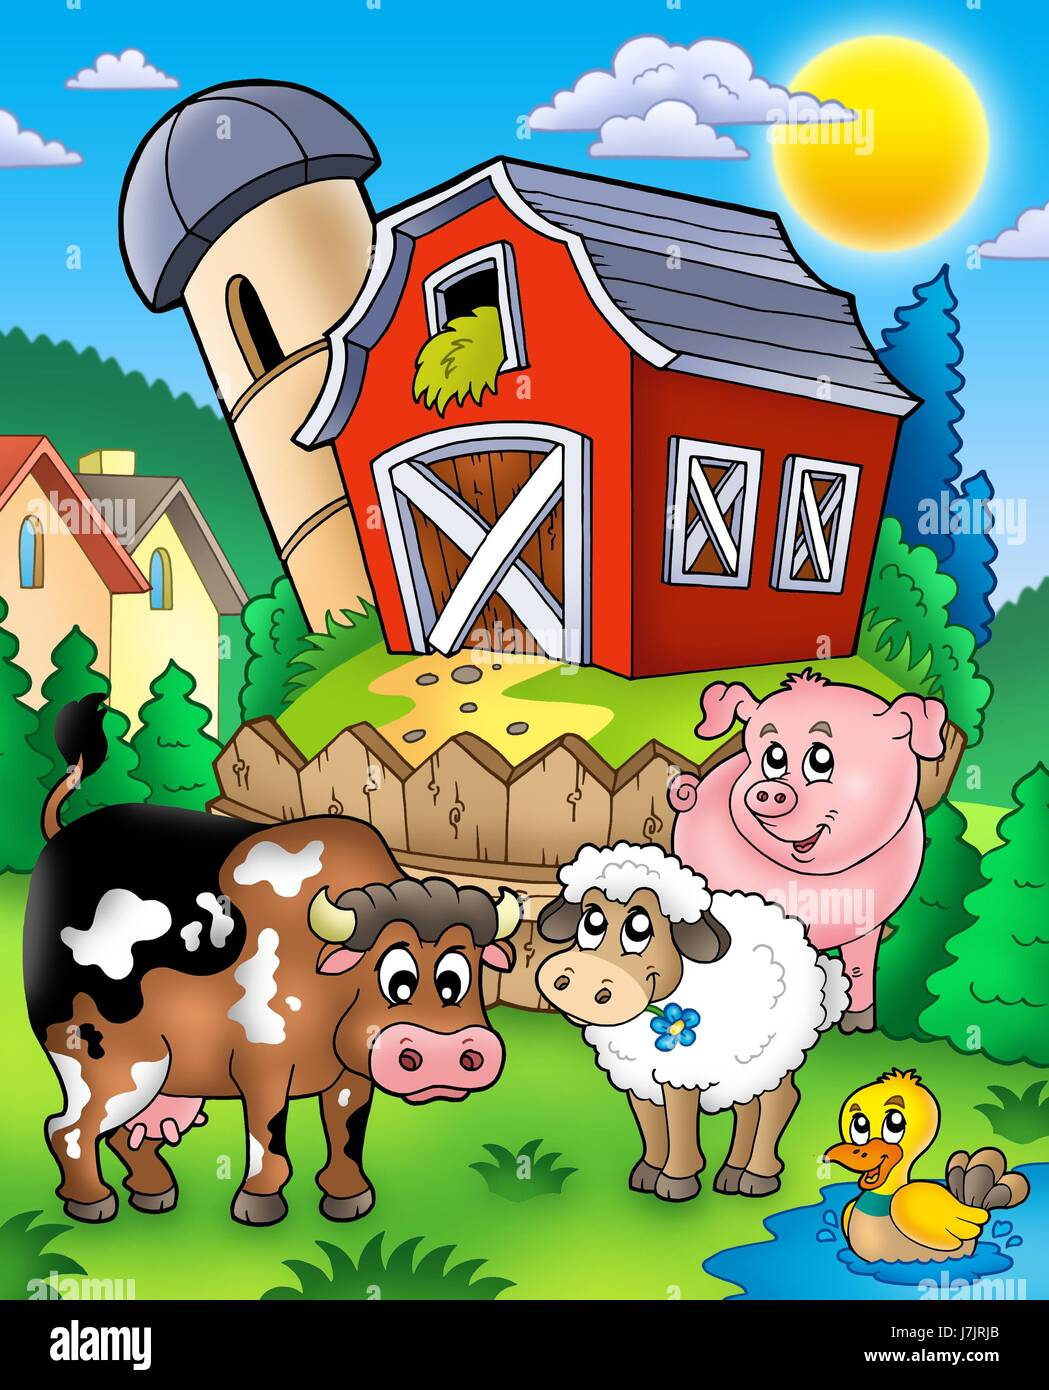 Animal Mammal Bird Sheep Duck Cow Barn Pig House Building Tower Agricultural